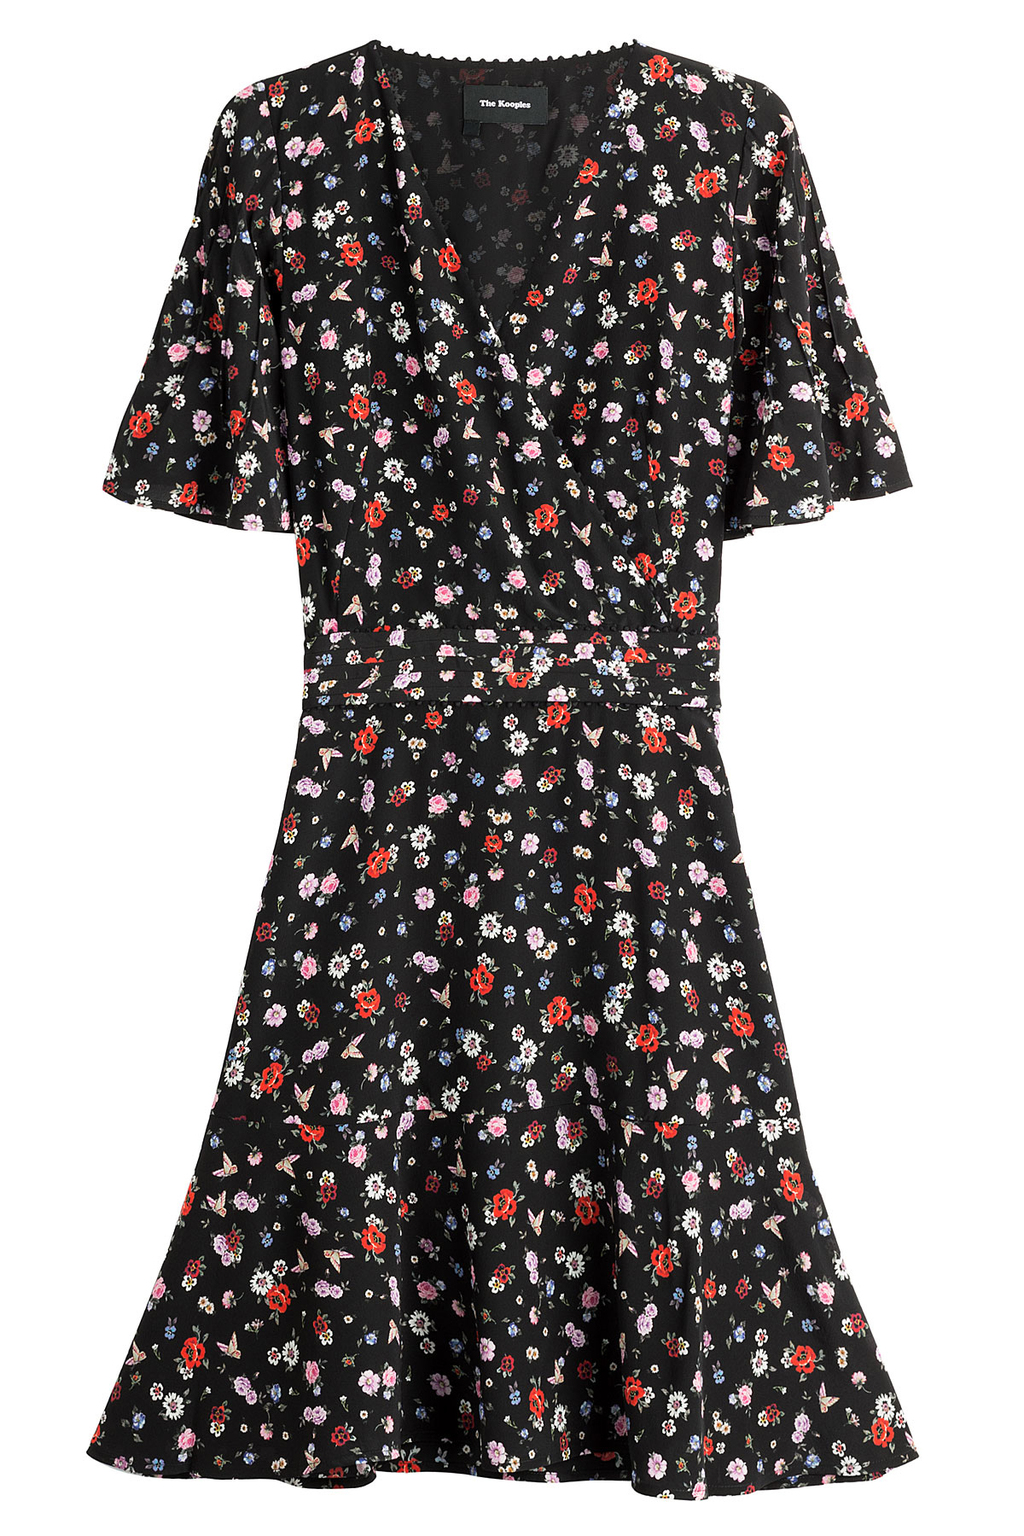 Printed Silk Dress - style: tea dress; neckline: v-neck; secondary colour: true red; predominant colour: navy; occasions: casual, creative work; length: just above the knee; fit: soft a-line; fibres: silk - 100%; sleeve length: short sleeve; sleeve style: standard; texture group: crepes; pattern type: fabric; pattern: patterned/print; season: s/s 2016; wardrobe: highlight